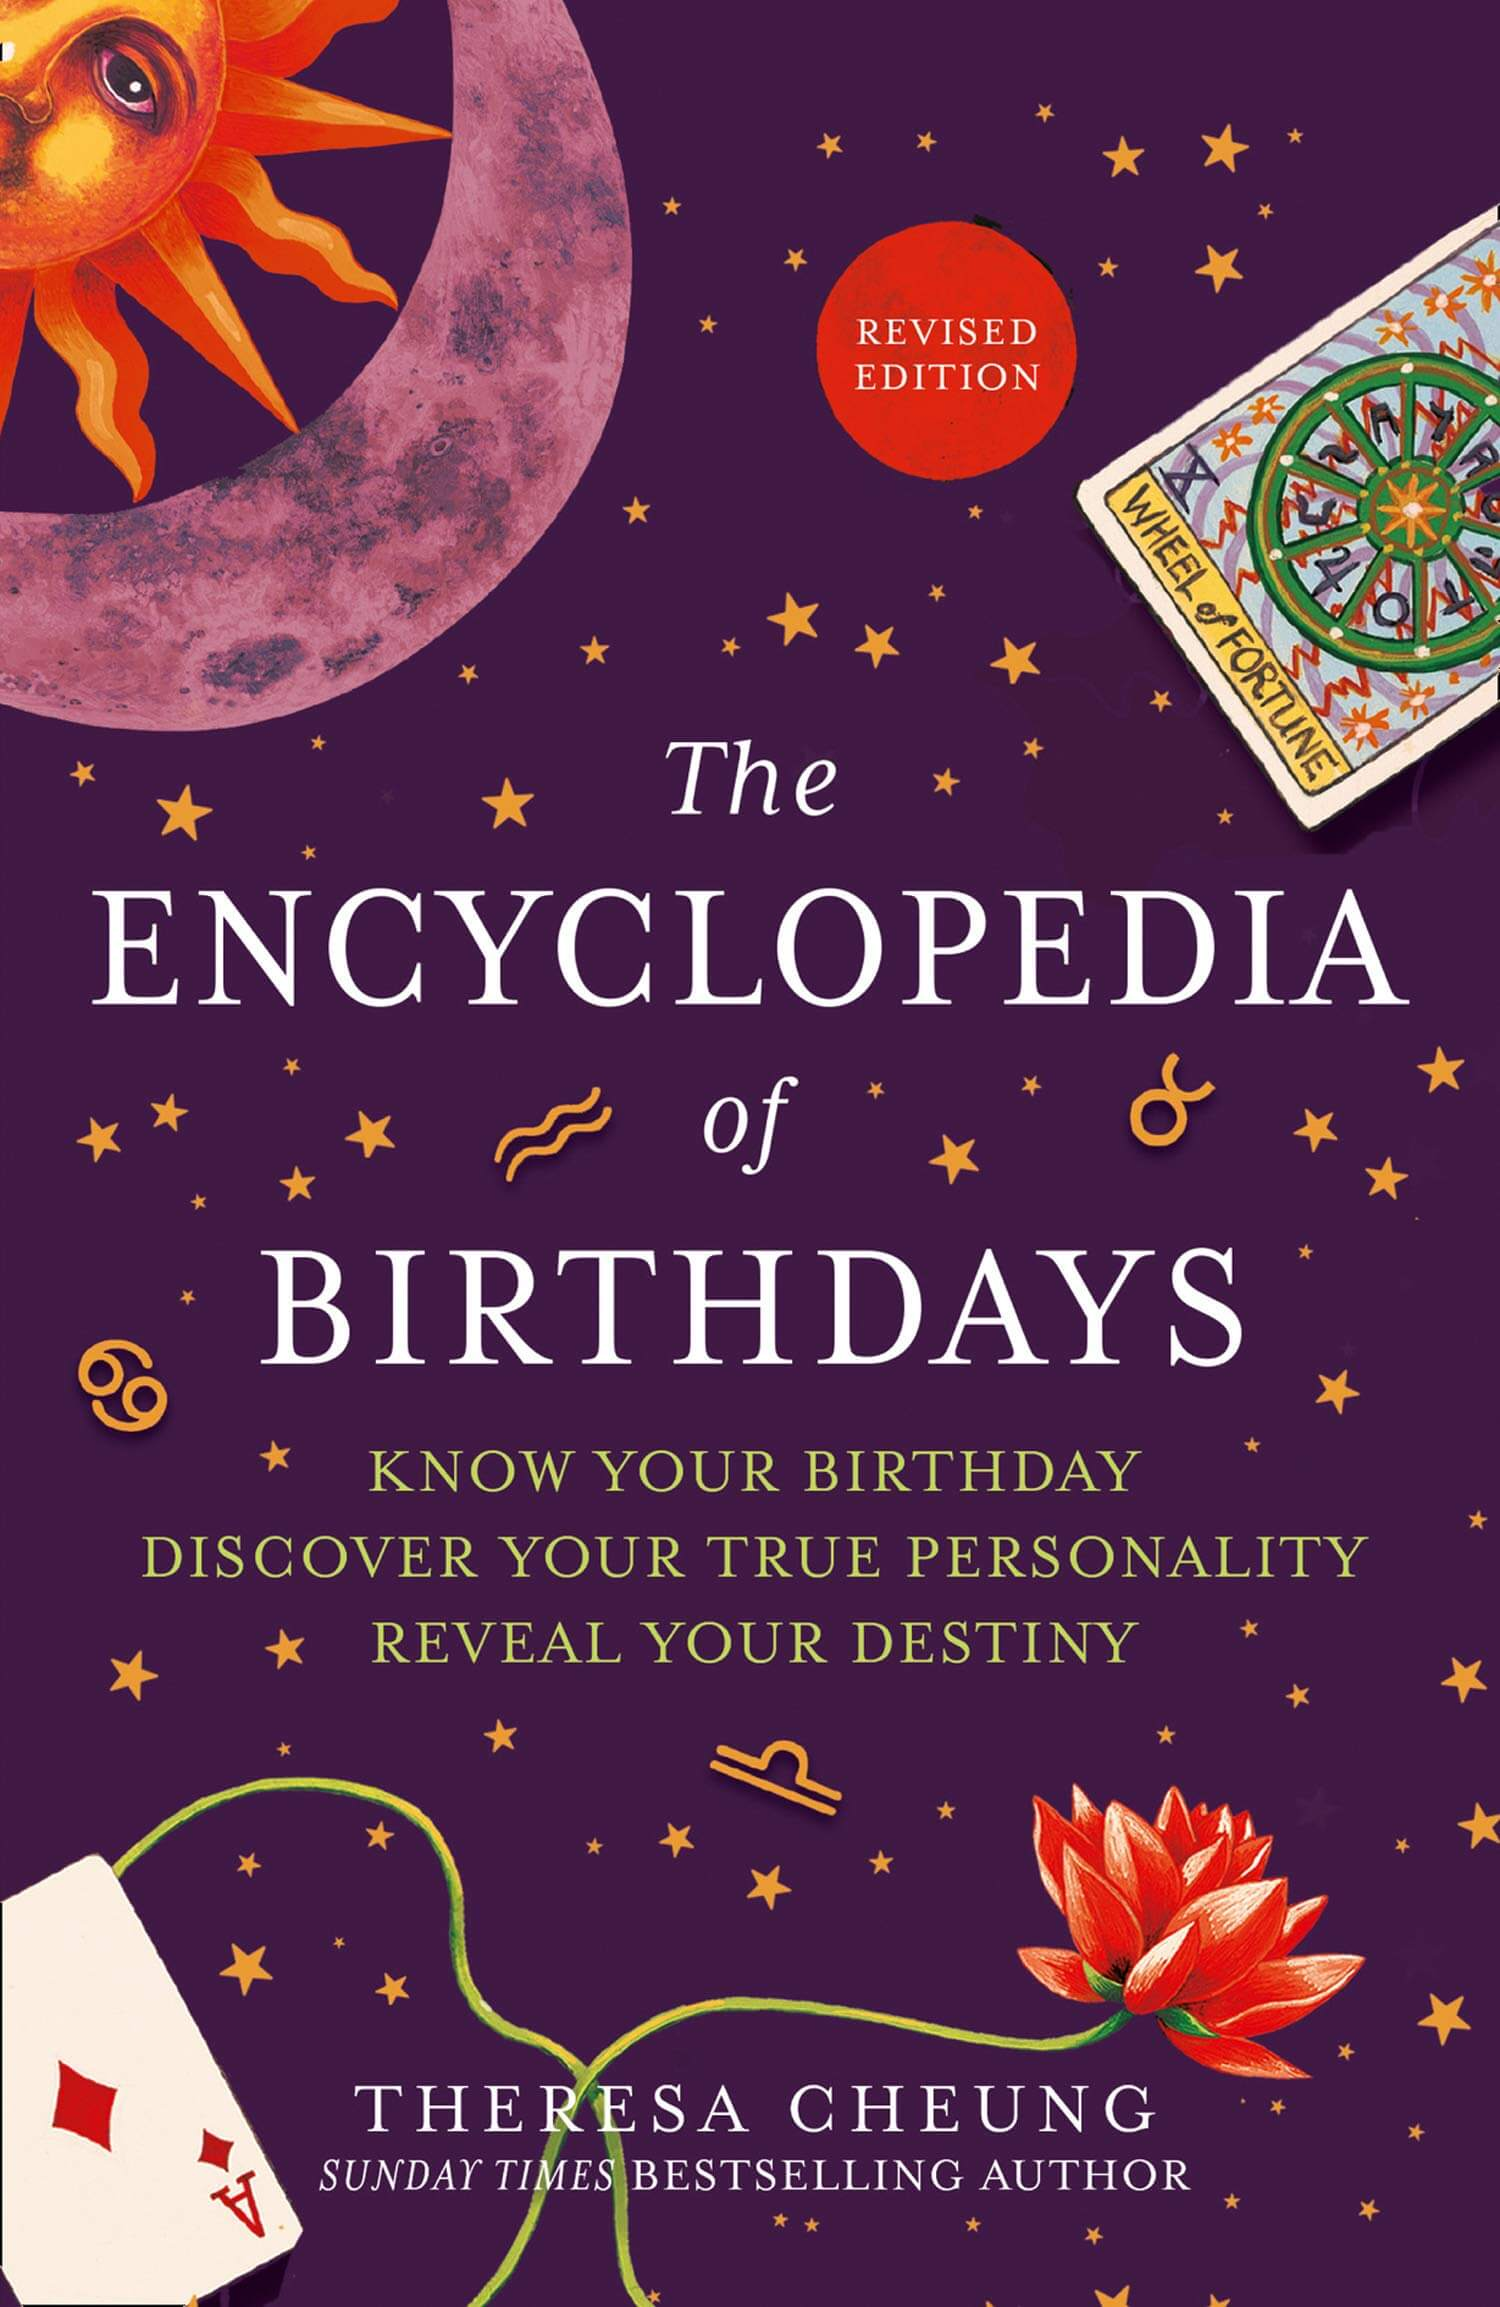 The Encyclopedia of Birthdays [Revised edition] - Theresa Cheung